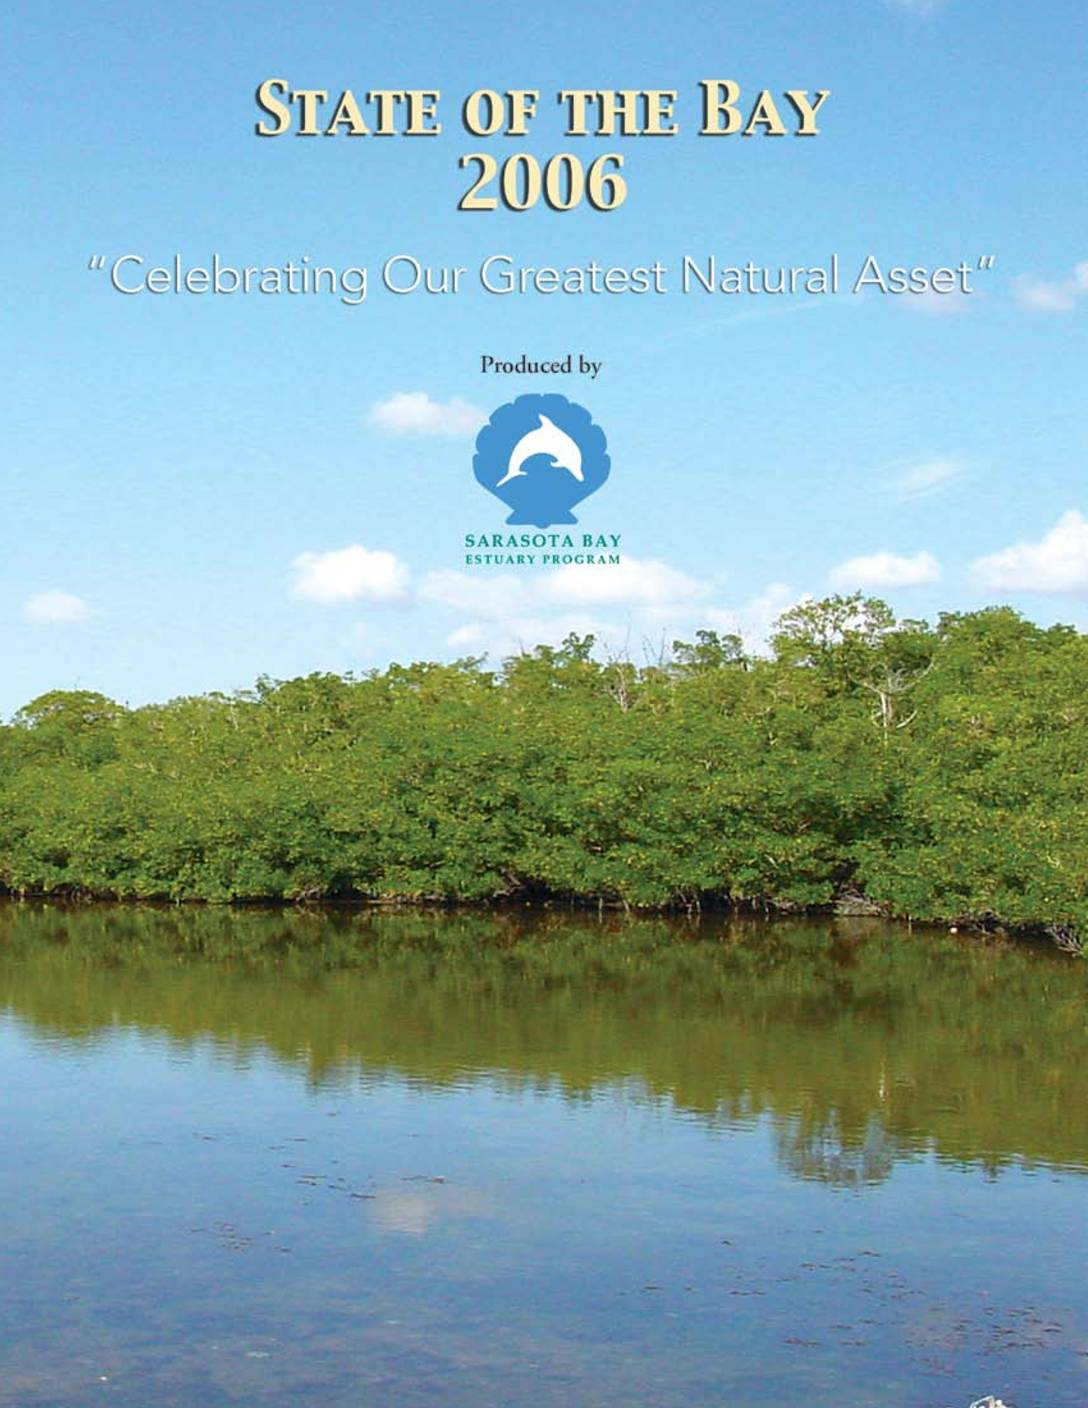 Click to read the 2006 State of the Bay Report for Sarasota Bay.